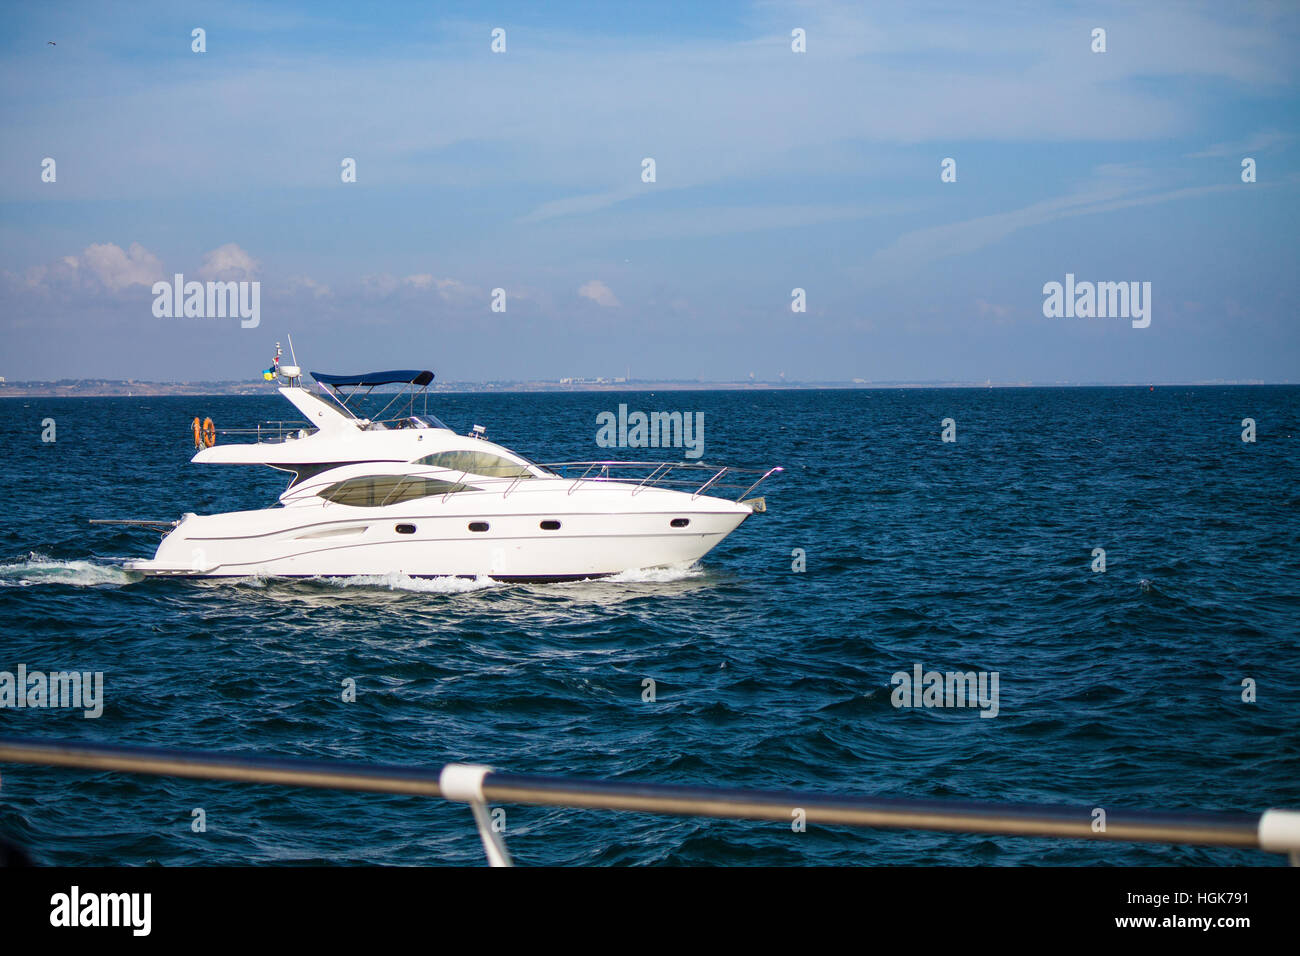 A luxury private yacht under way in the sea. - Stock Image